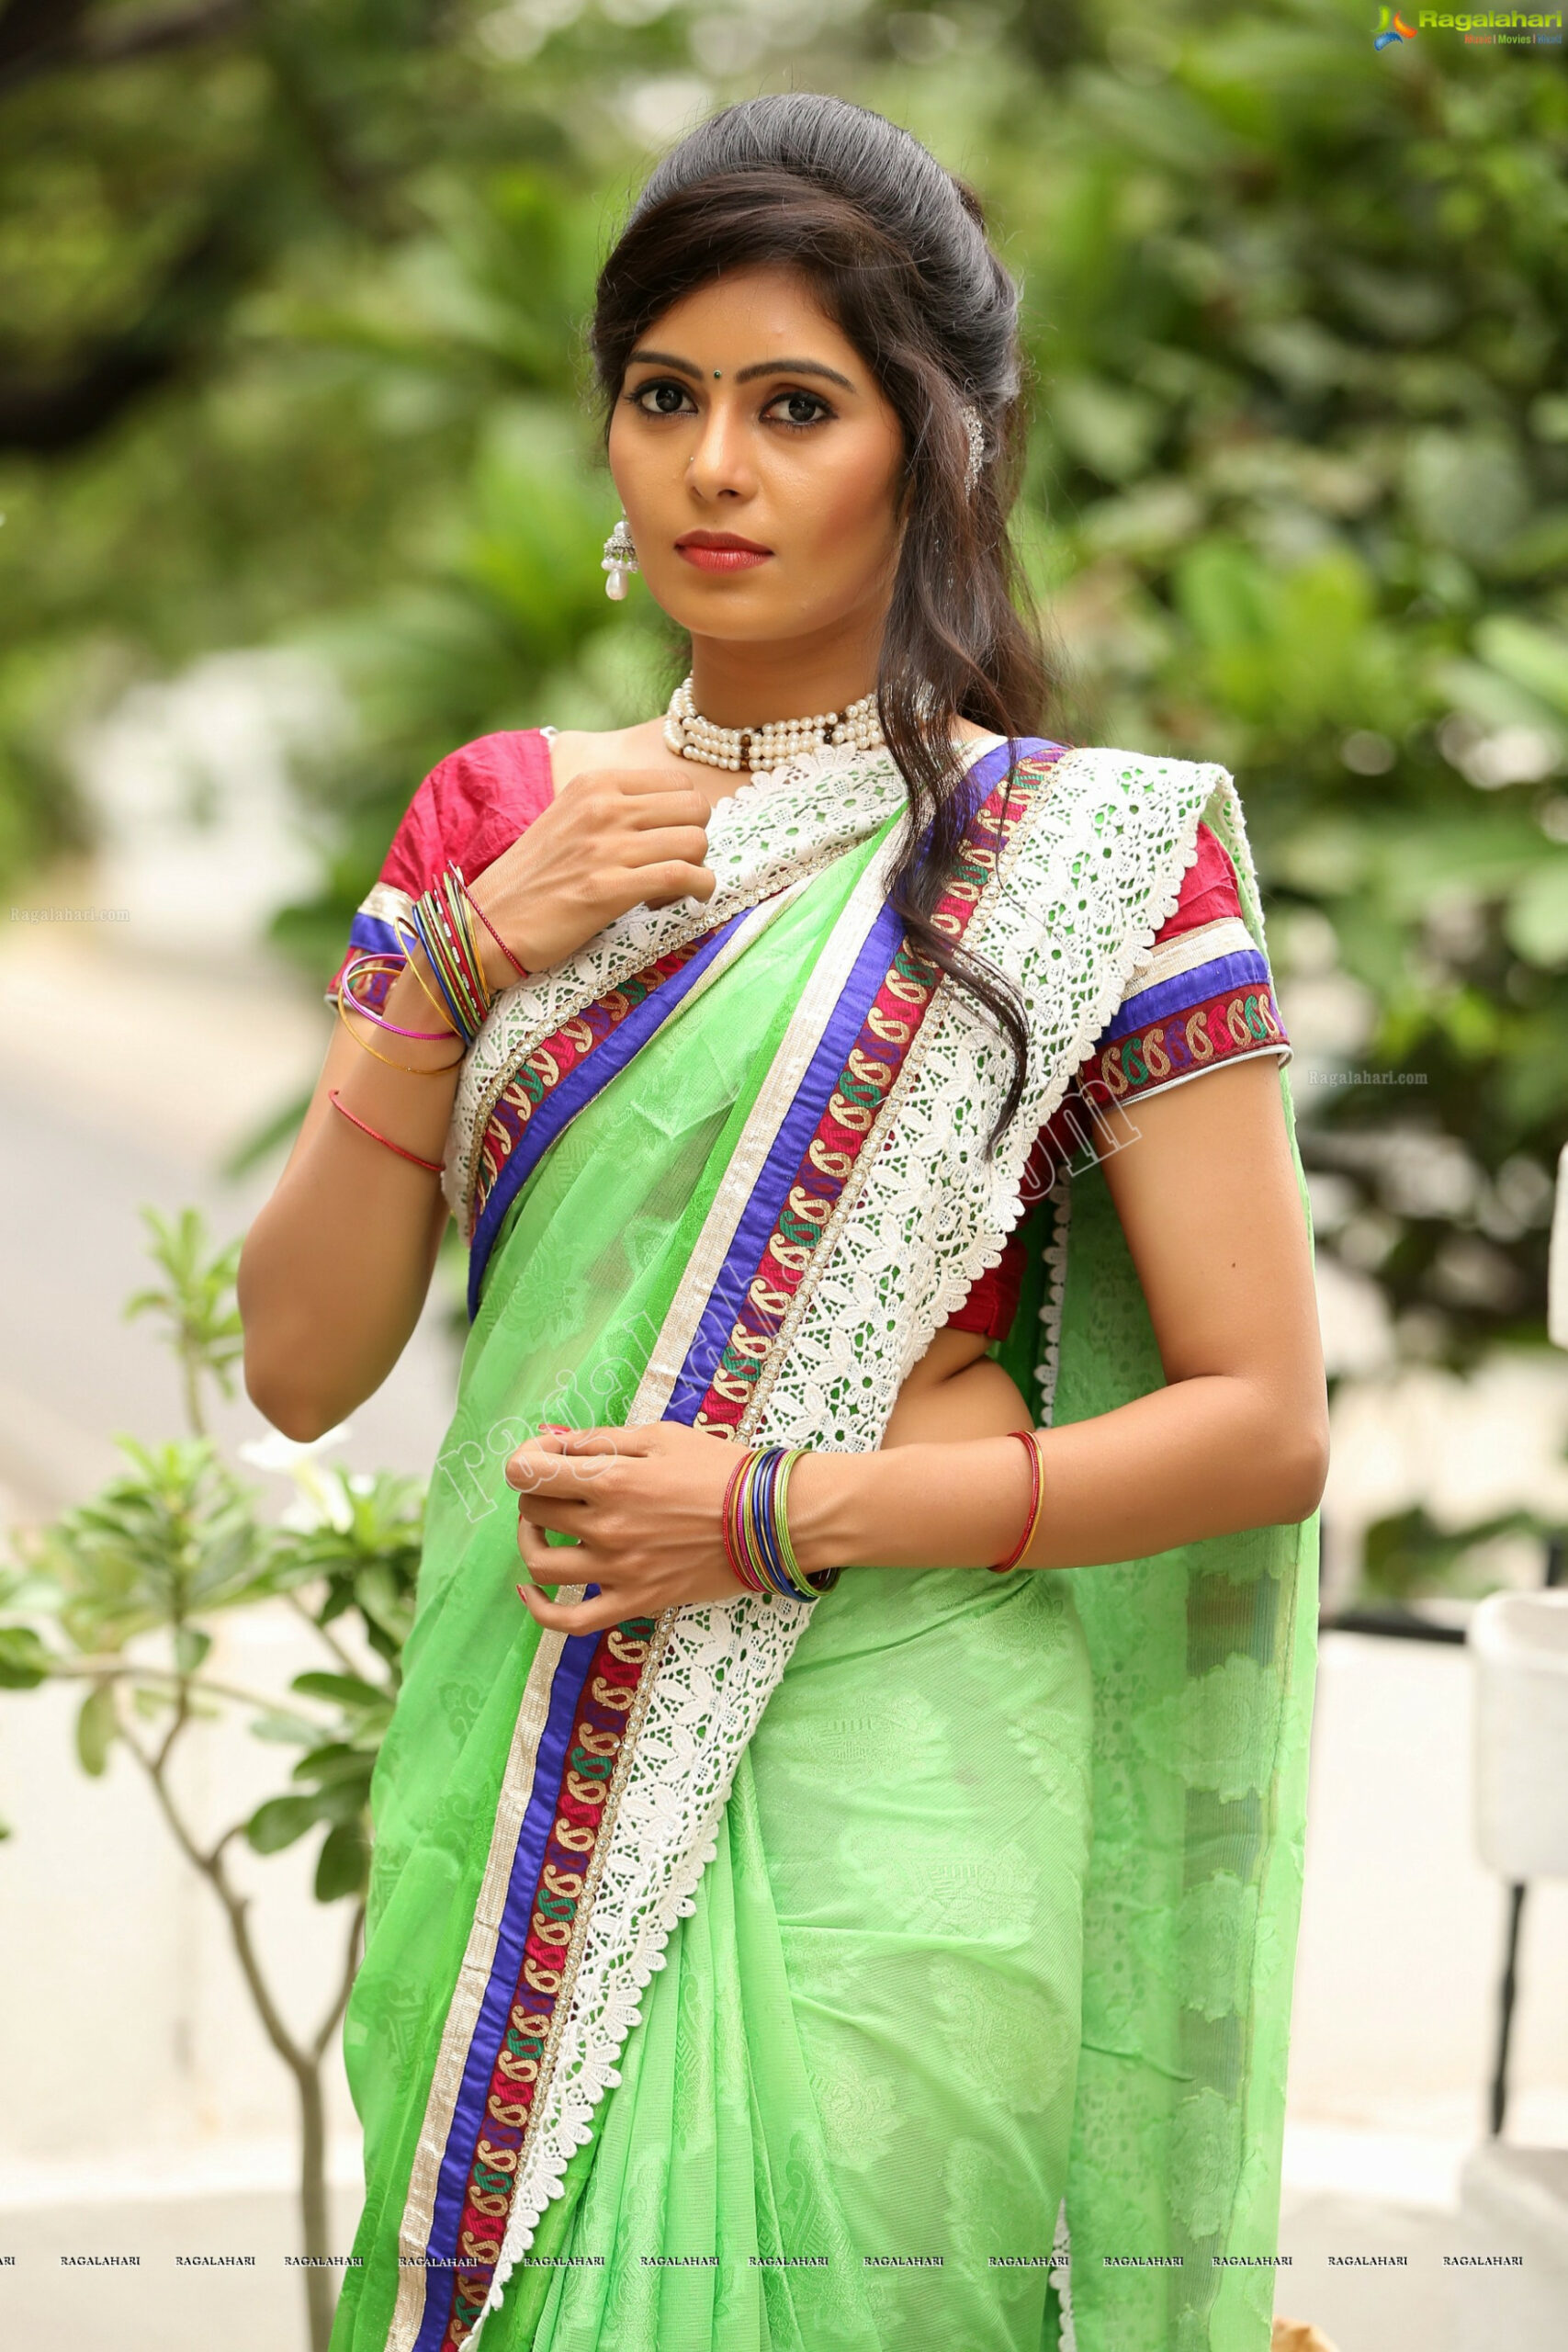 Green Saree Ragalahari Related Keywords - Green Saree